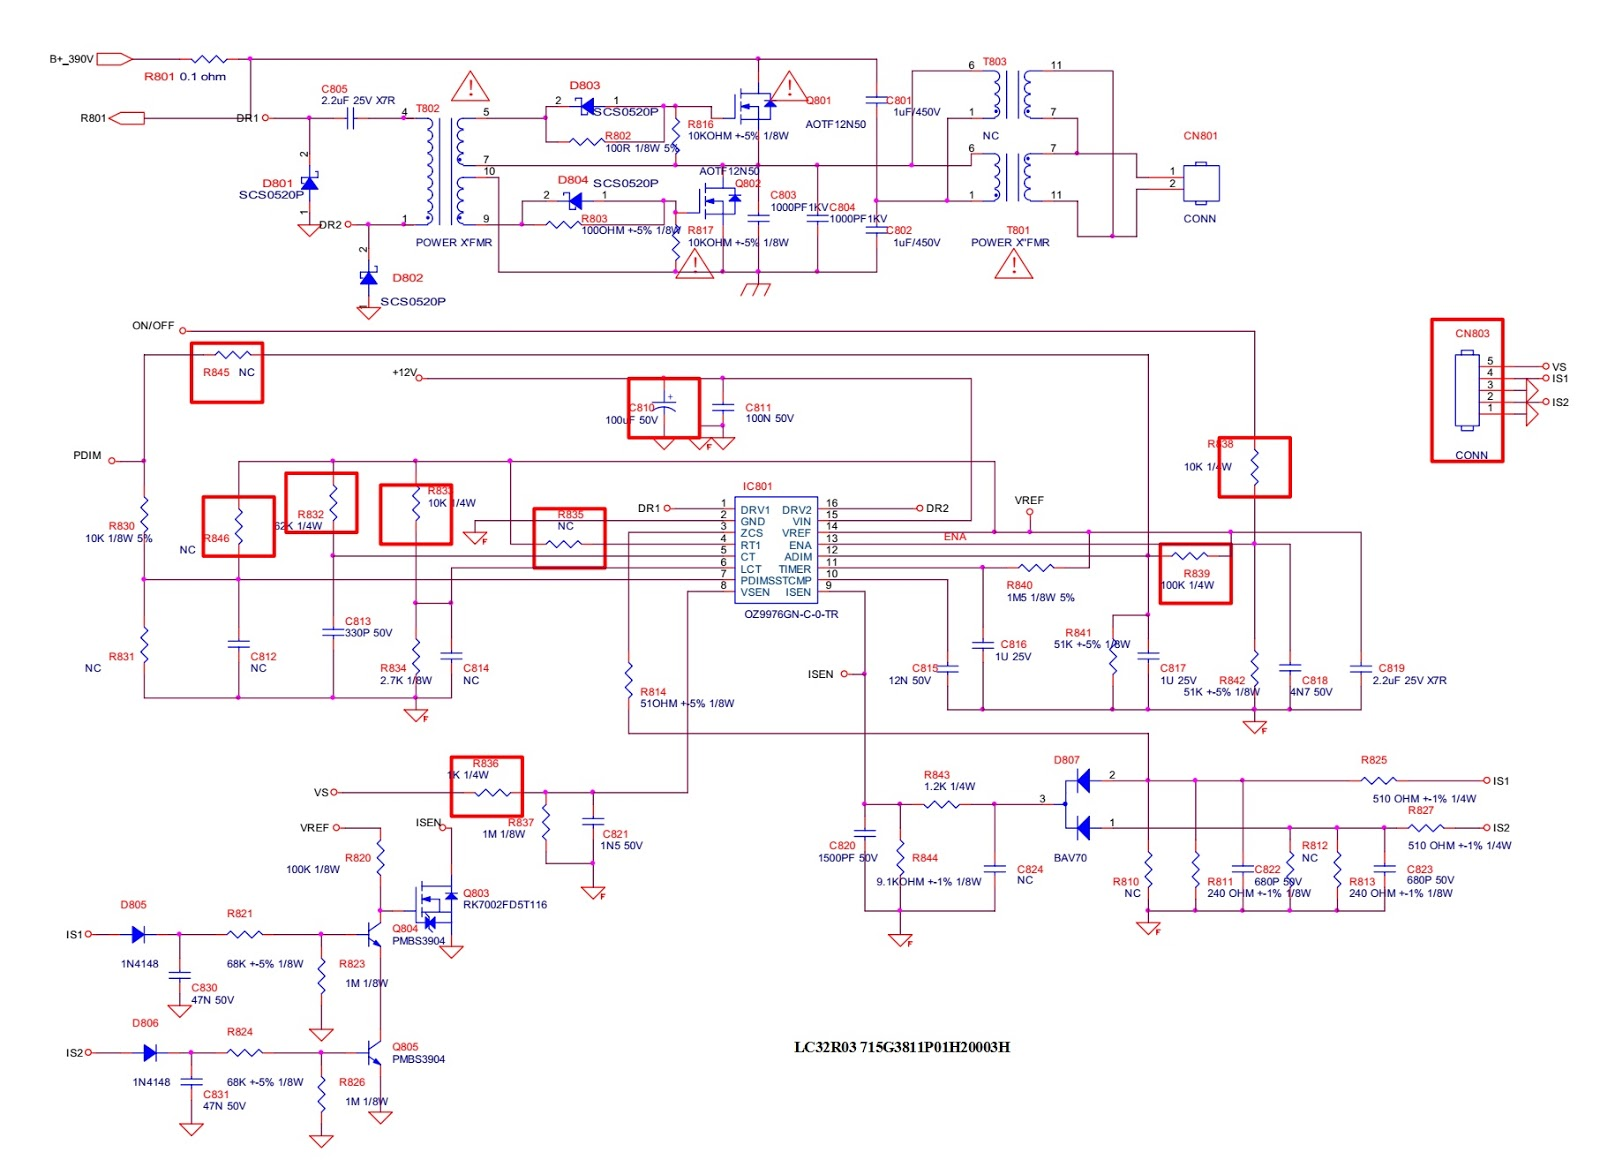 Electro Help  Aoc Lc32r03 And Aoc Lc42r03 Lcd Tv Smps Circuit Diagram